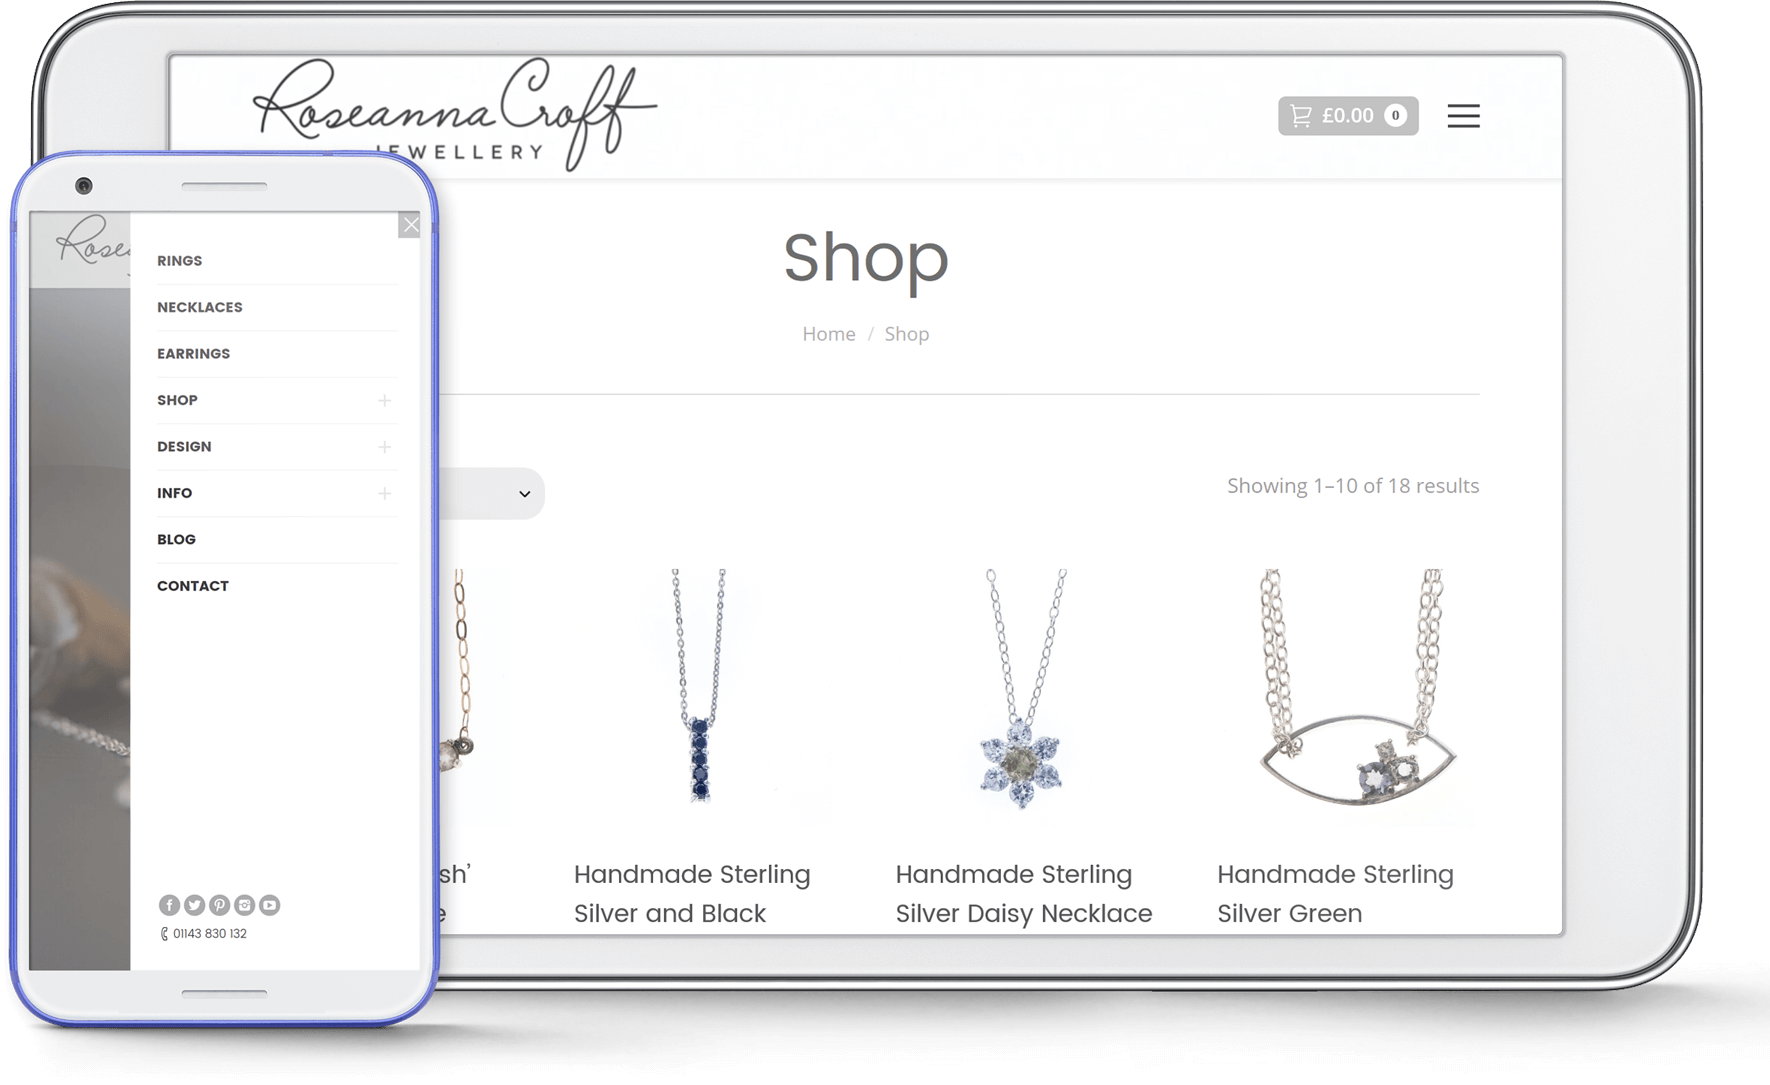 Roseanna Croft Jewellery screenshot mobile